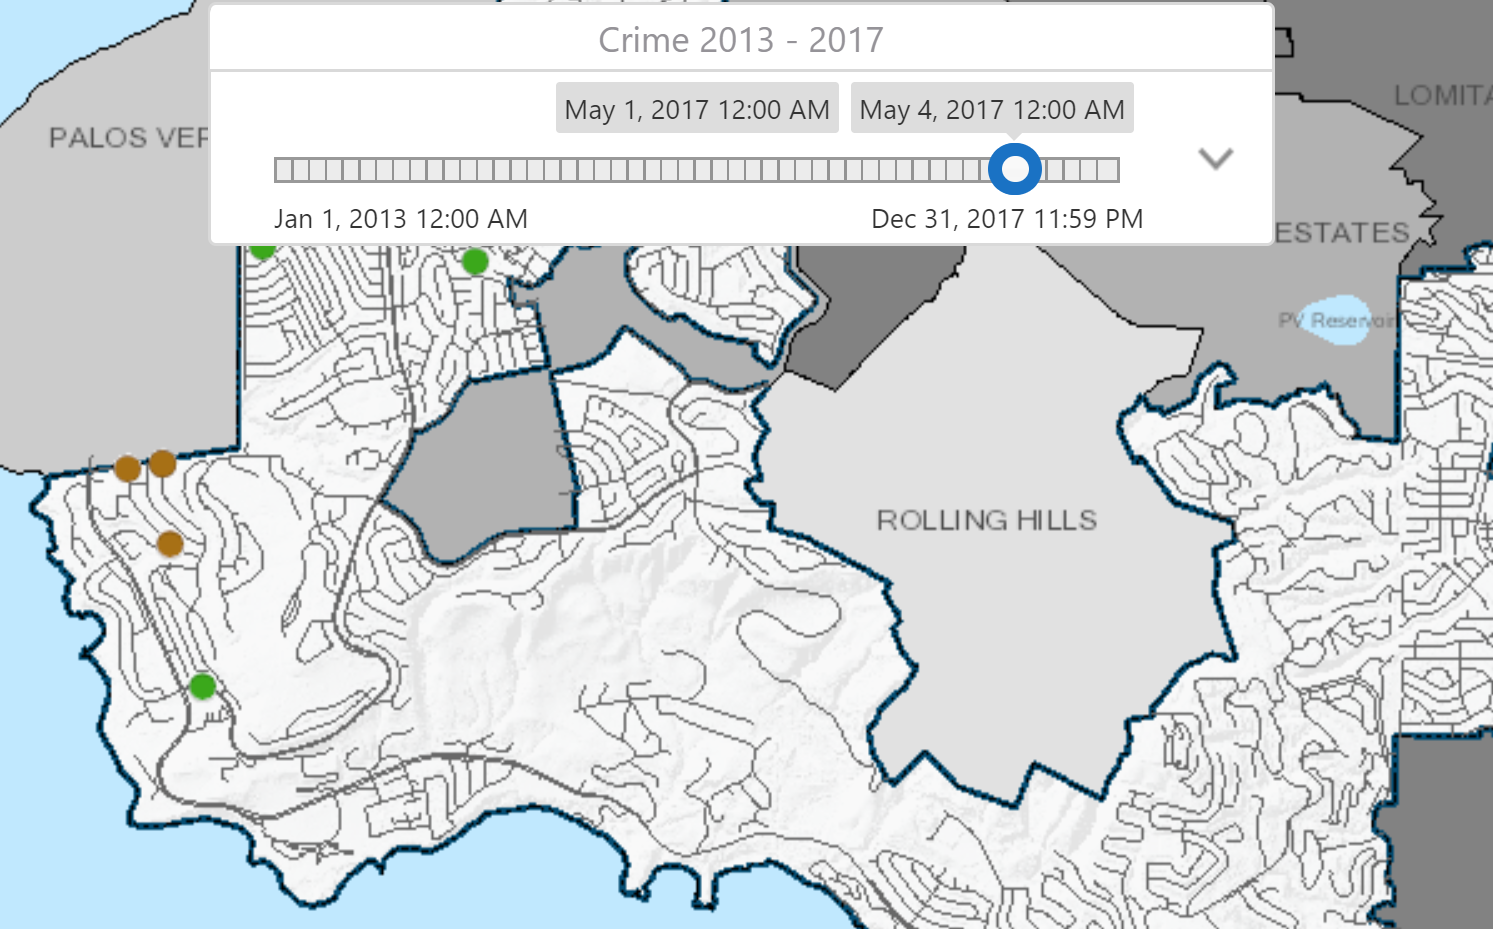 the crime viewer also has a comprehensive report where the public can view where crime has increased or decreased by category from 2005 present